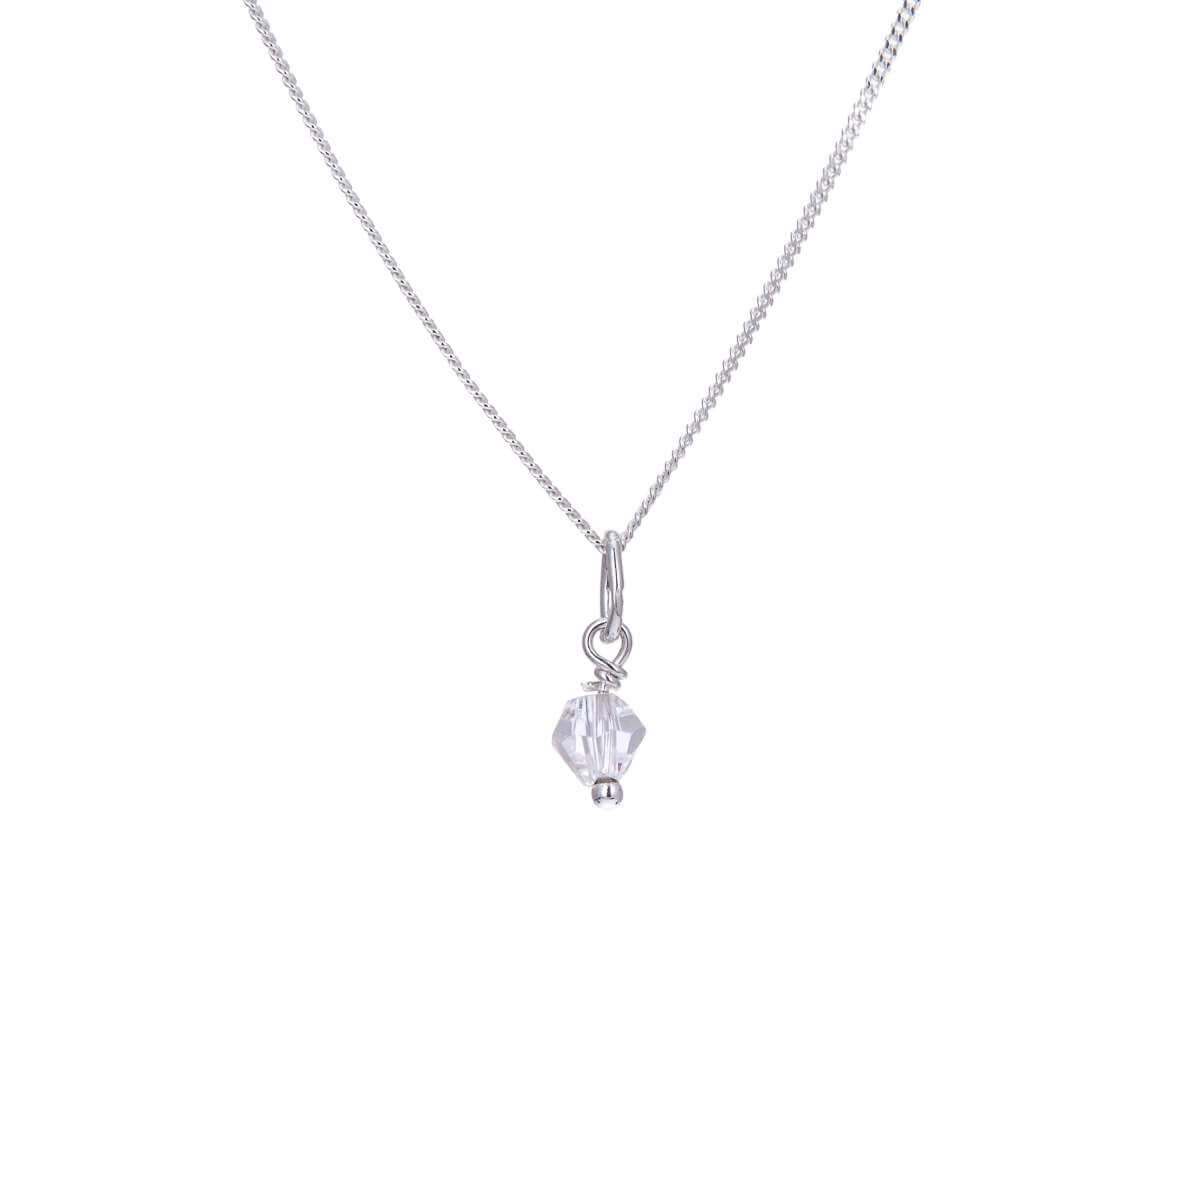 Sterling Silver Clear CZ Bead Necklace - 14 - 22 Inches